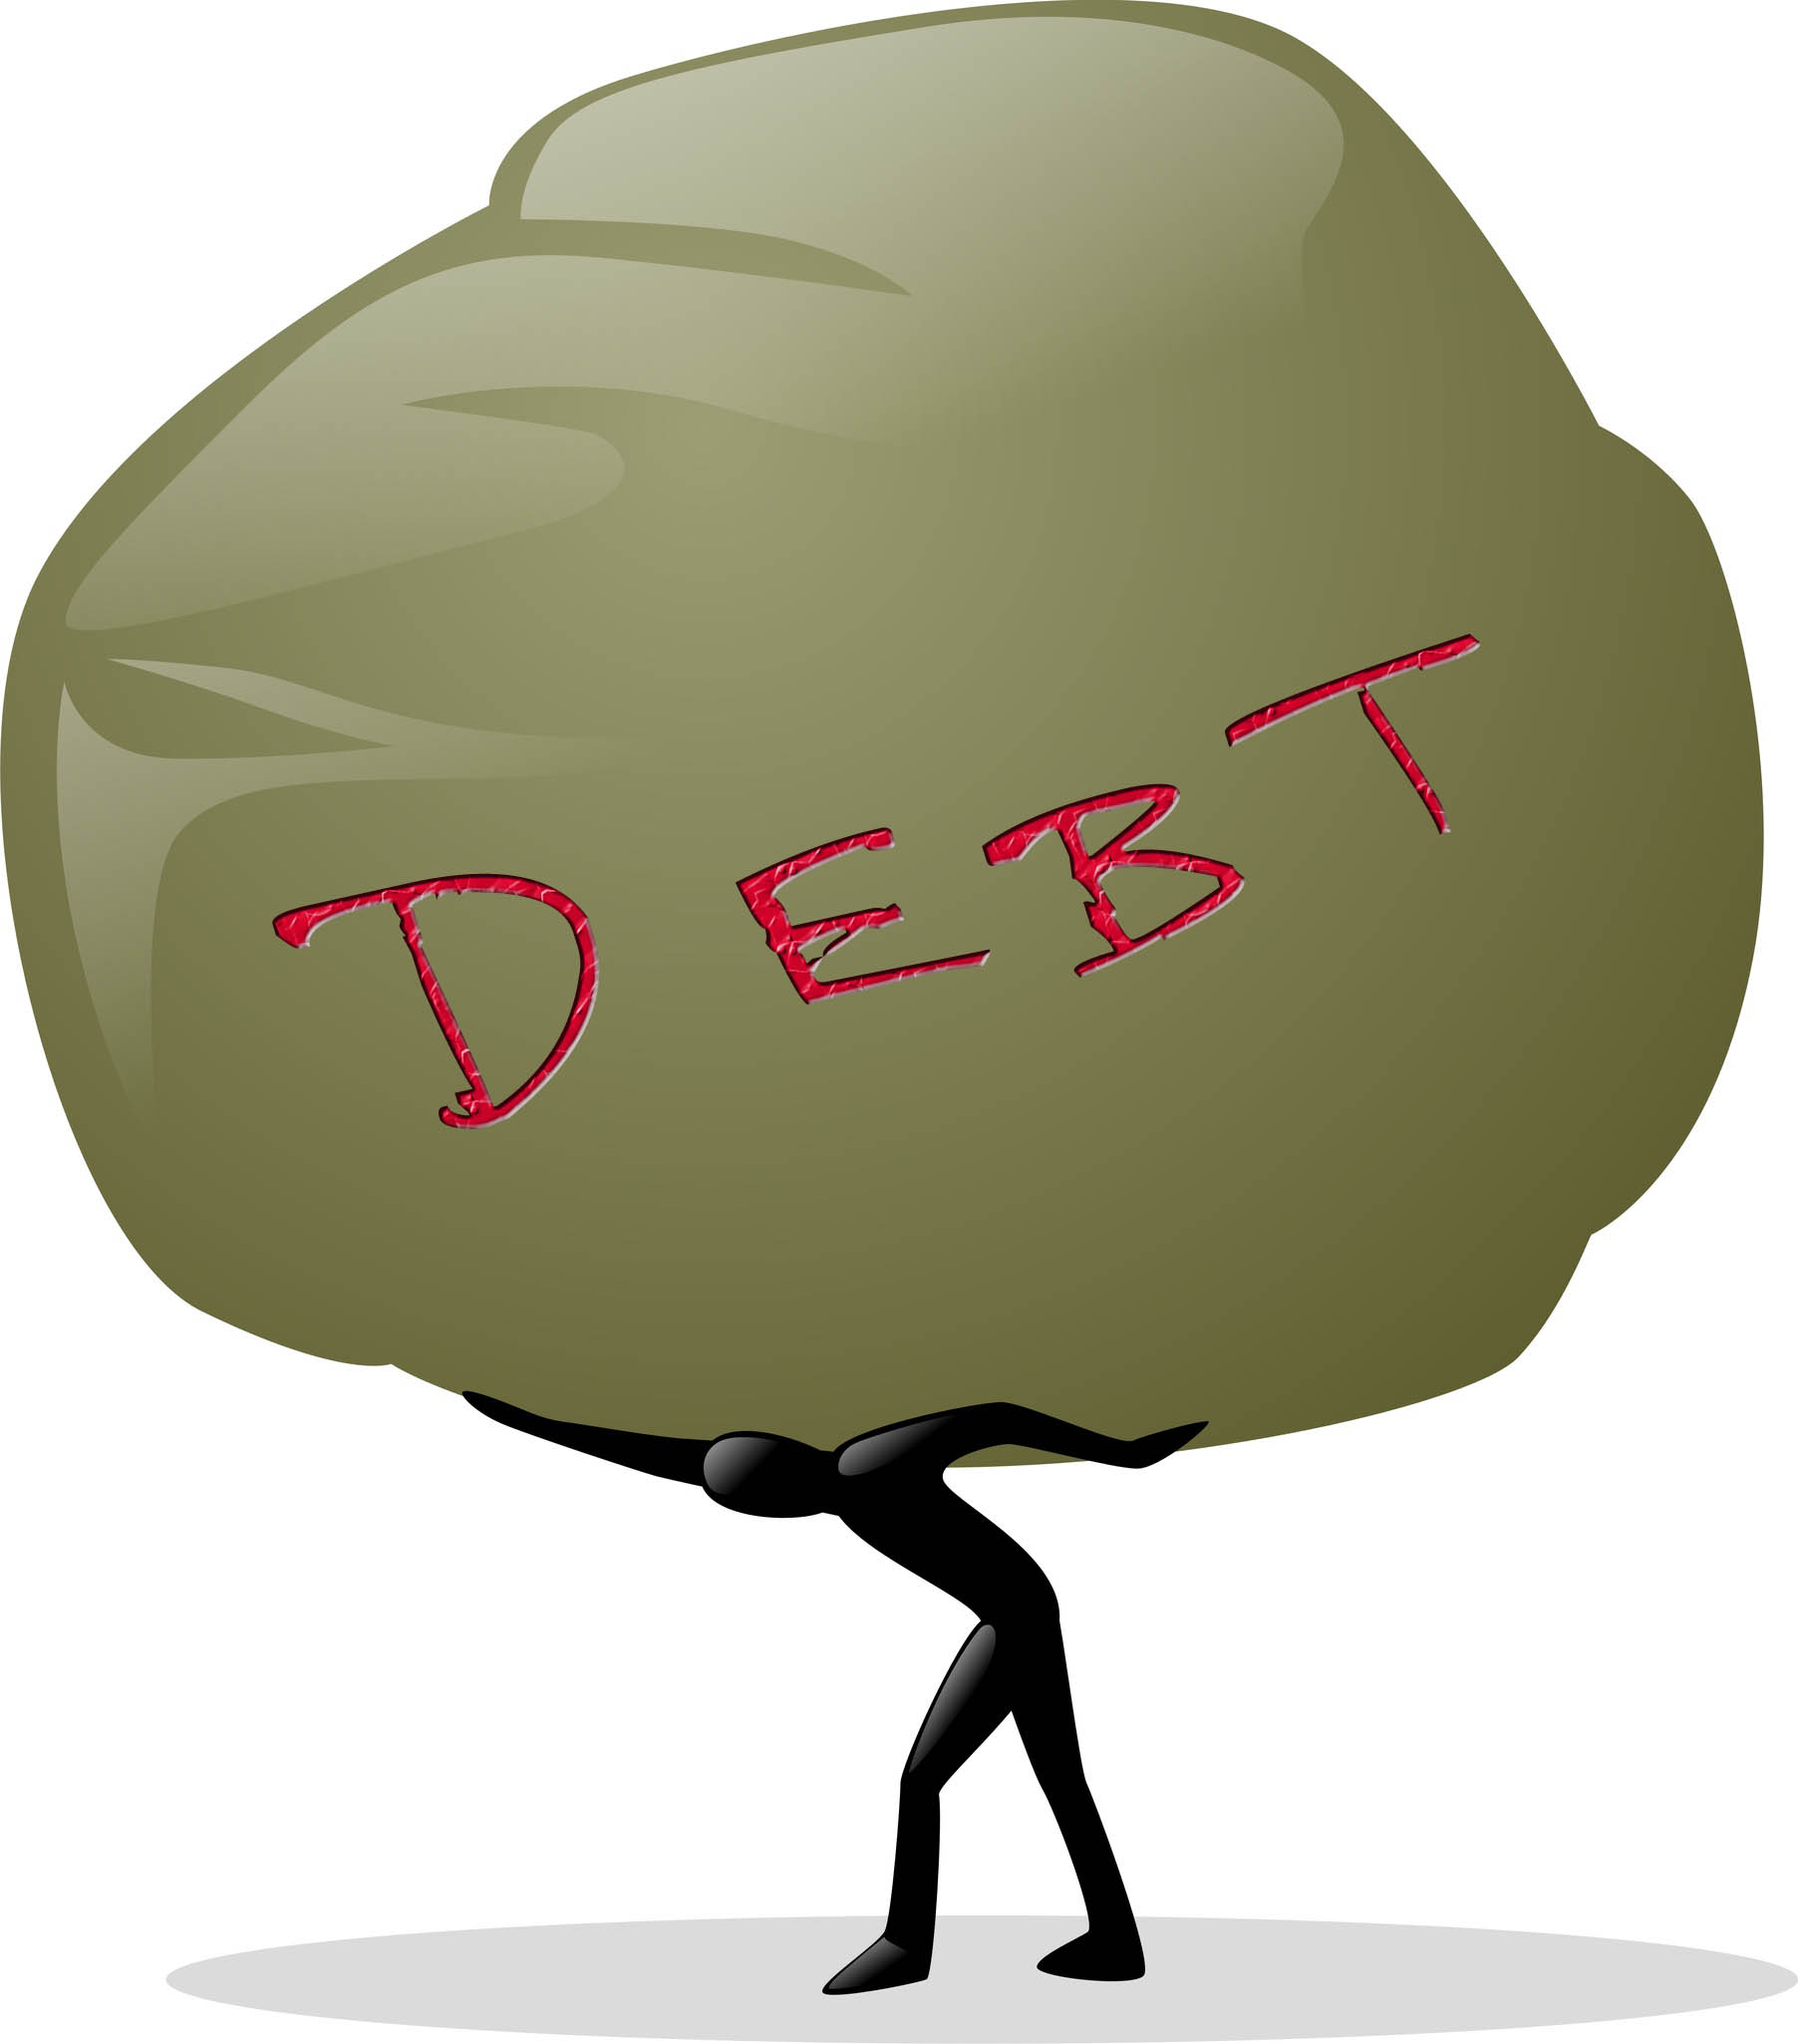 Types of loans for bad credit to avoid